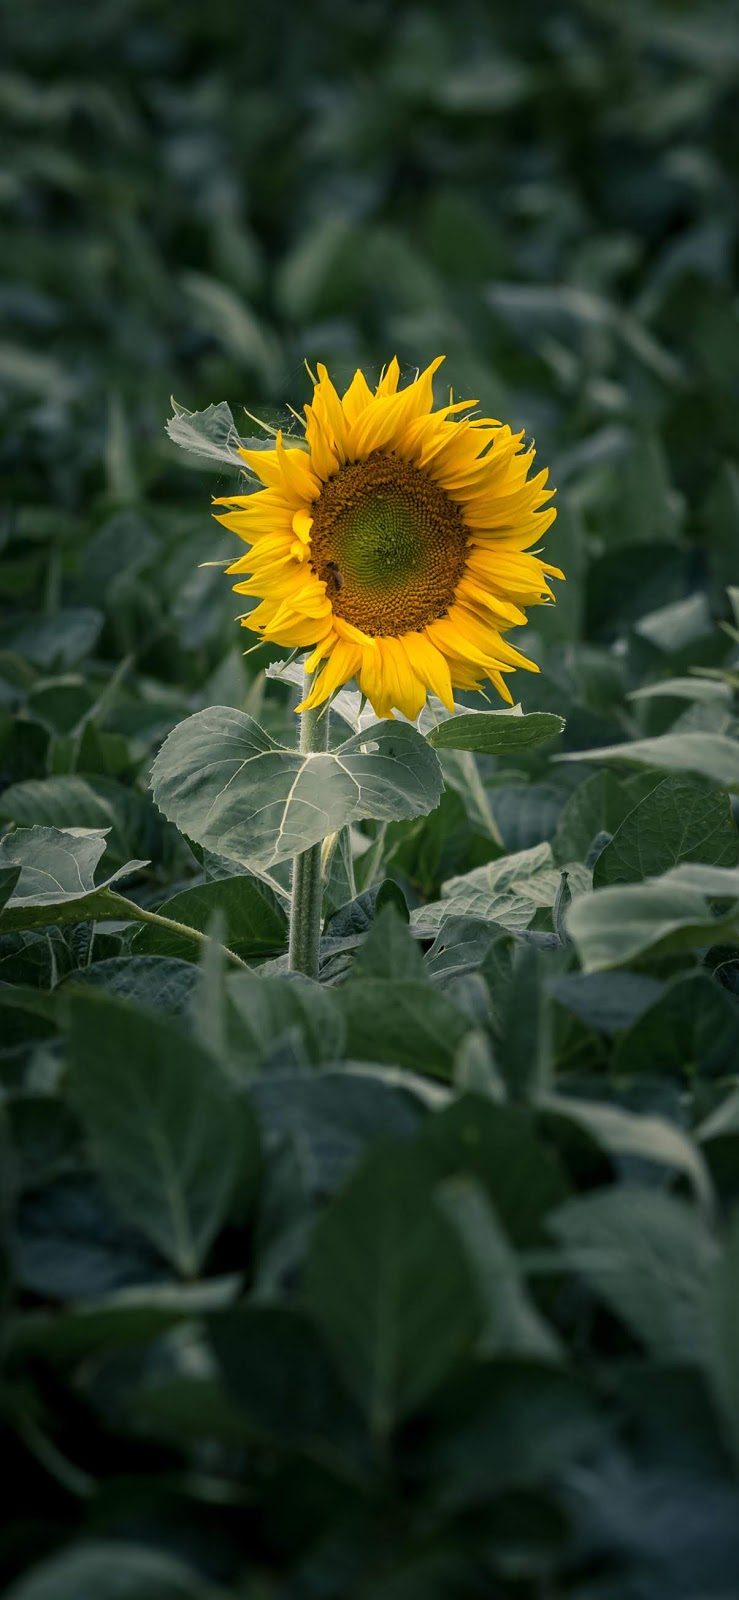 Lonely sunflower iphone xs max wallpaper